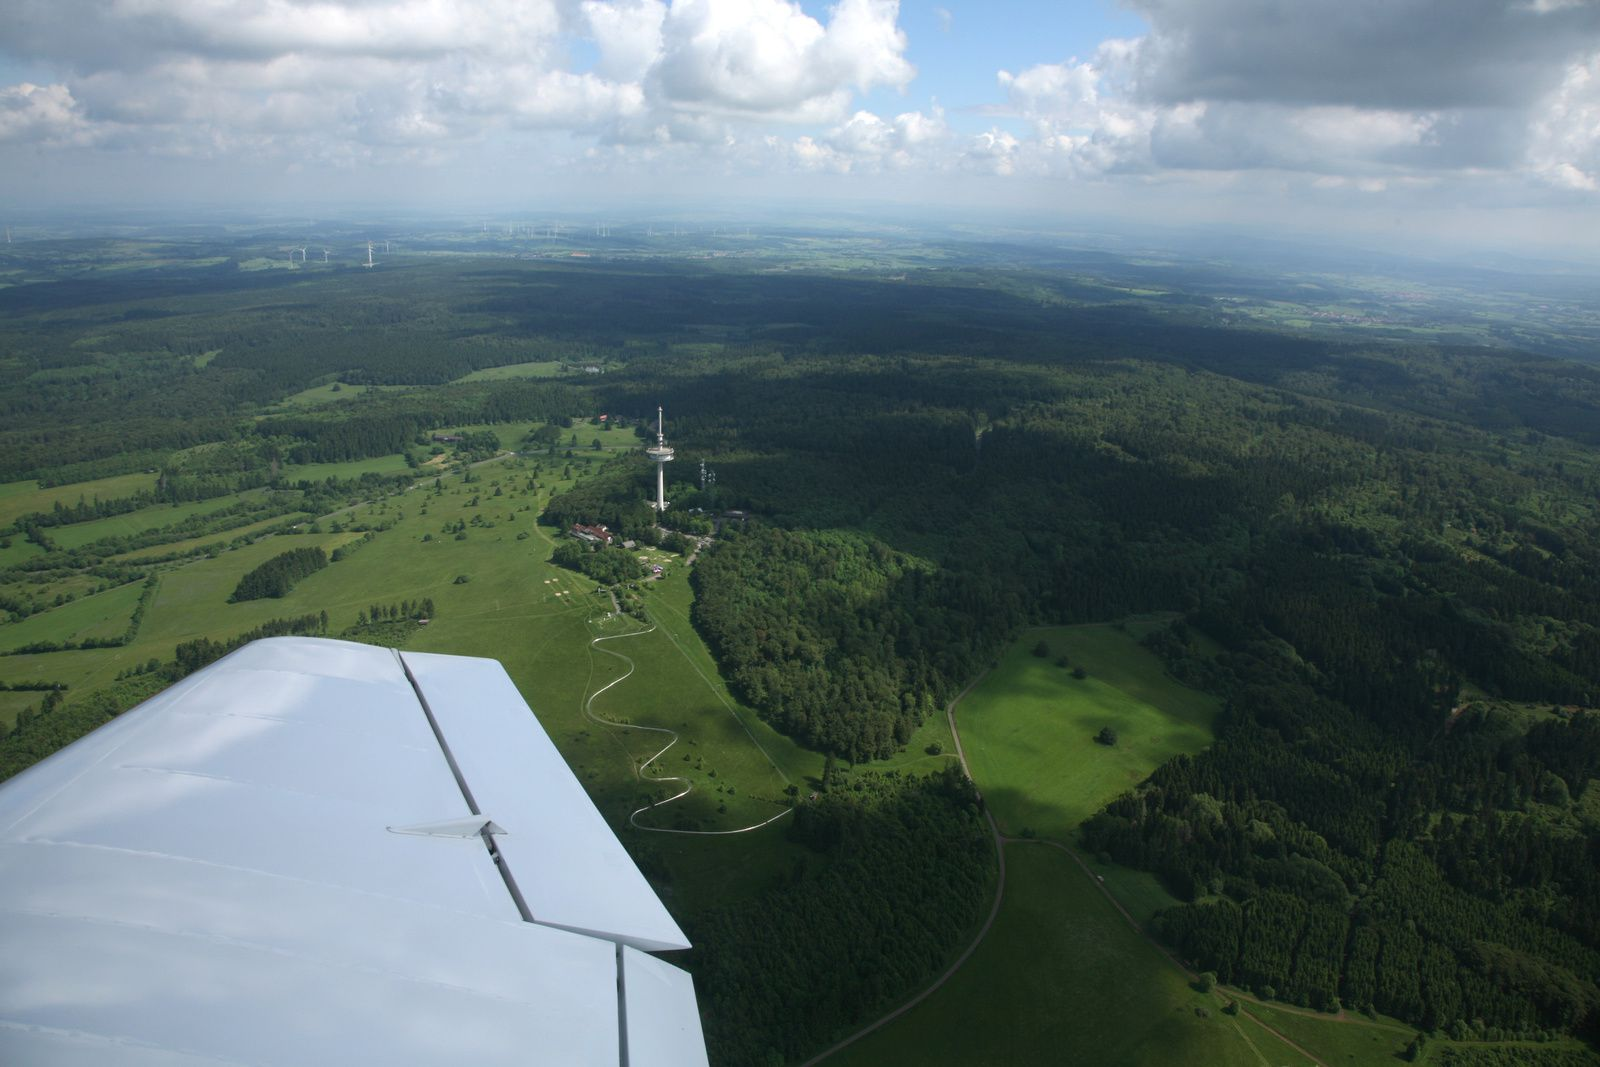 Vogelsberg - overview of Hoherodskopf, one of the peaks of the massif - photo © Bernard Duyck 05.2014